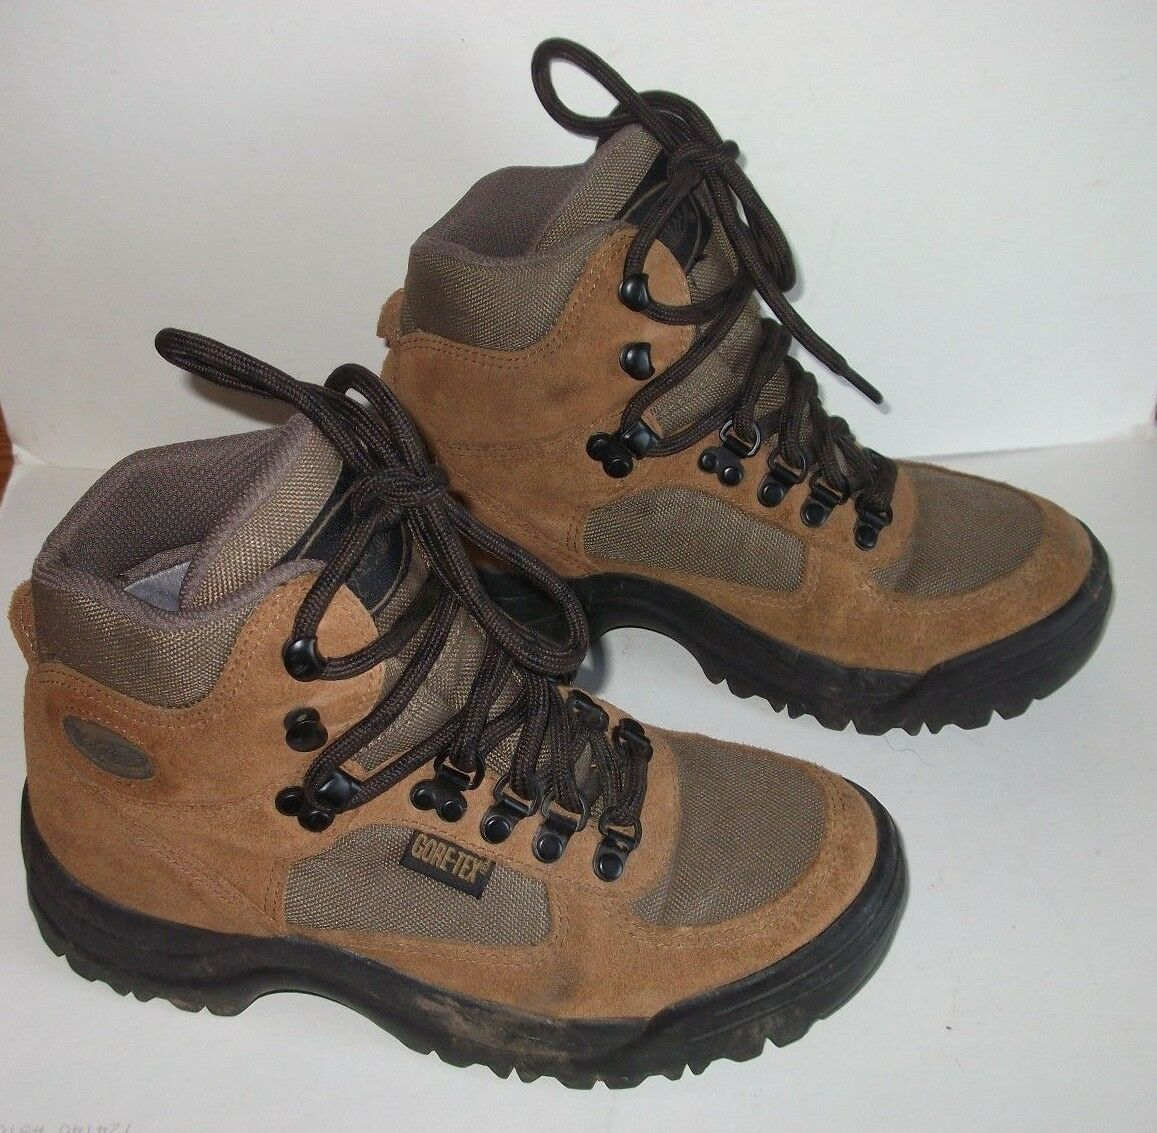 Vasque Hiking Boots Womens Size 6 Gortex Leather & Nylon Brown High Top